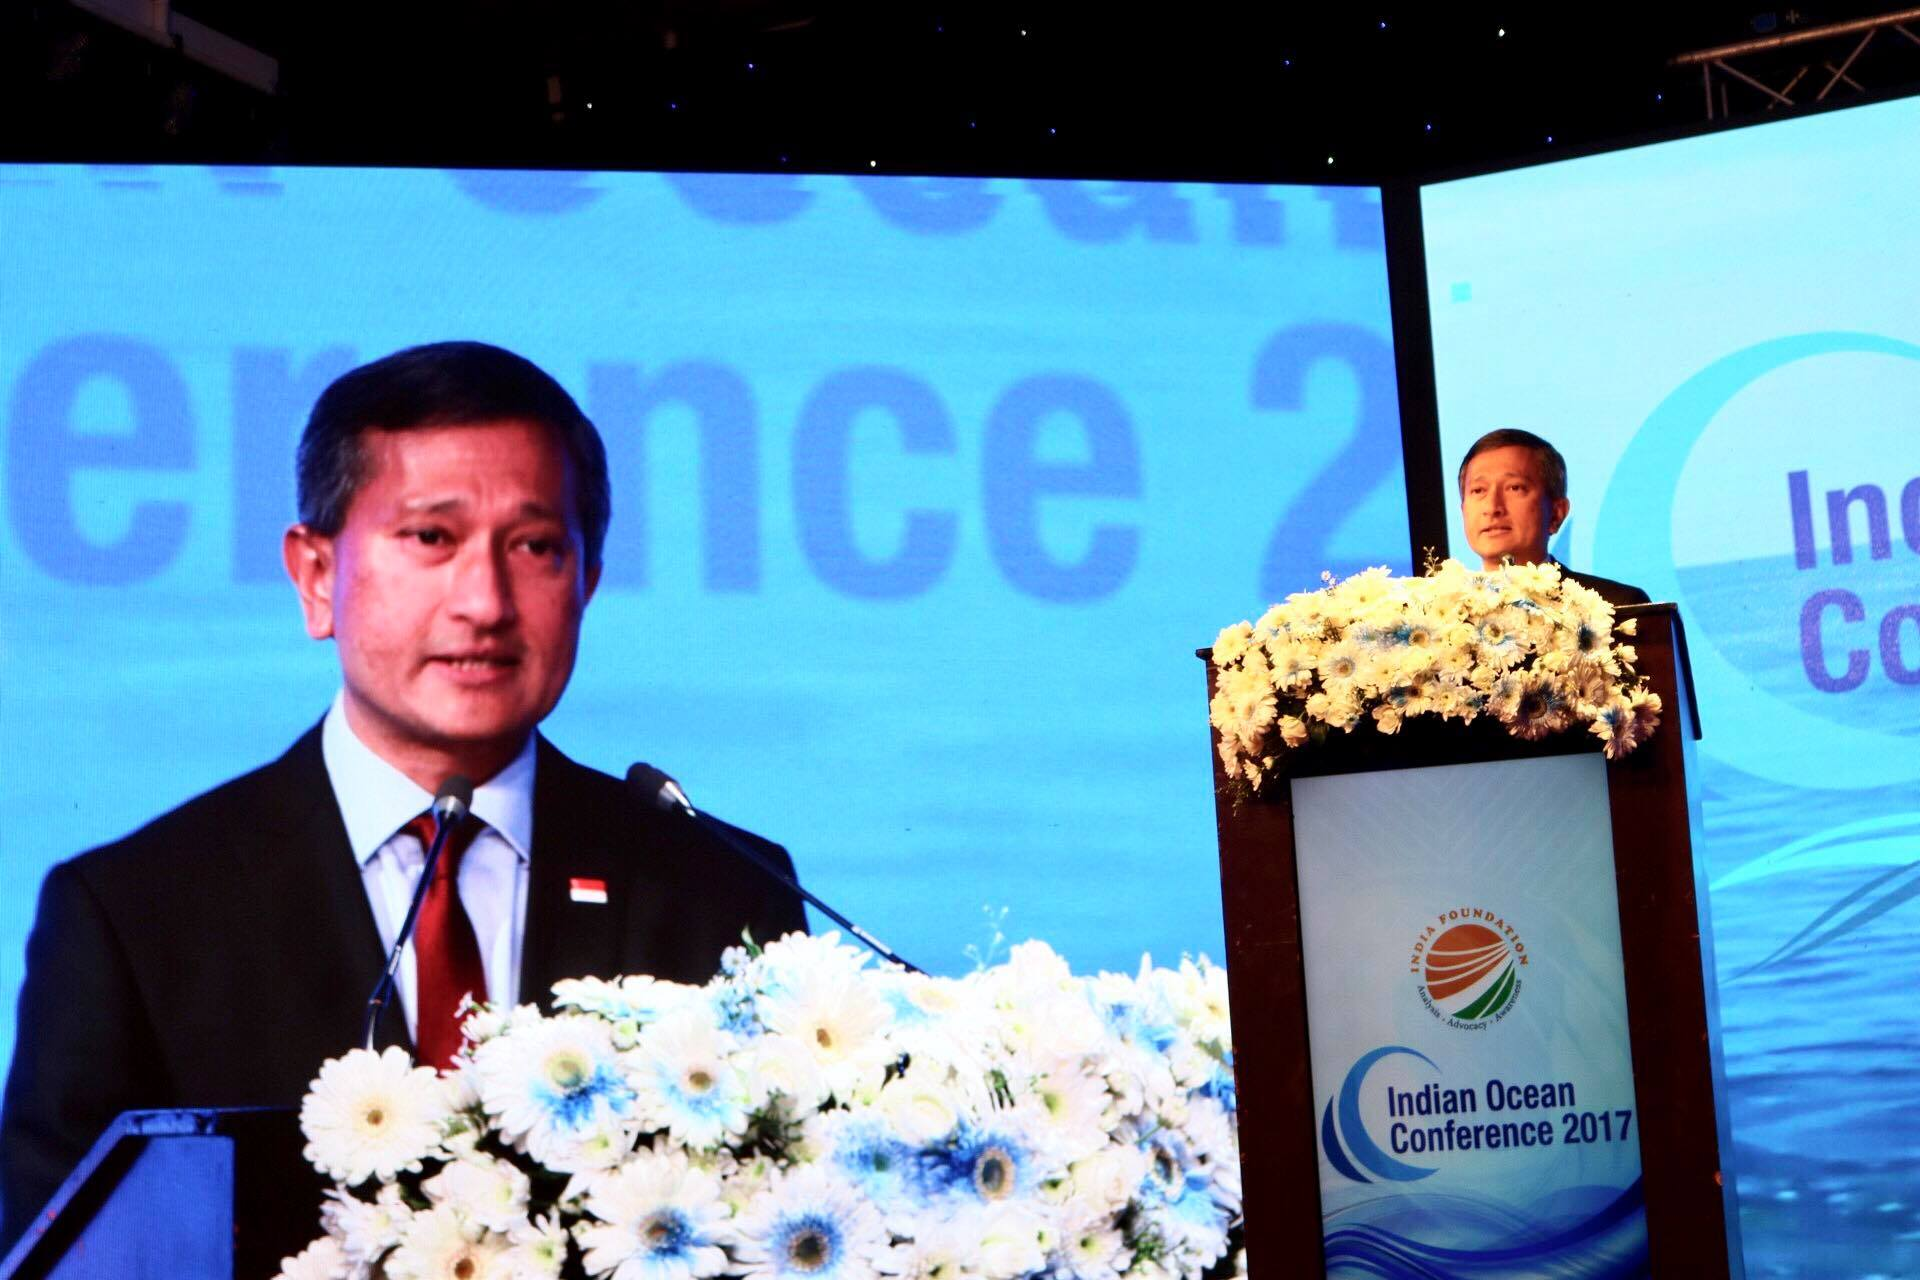 Singapore Minister for Foreign Affairs Dr Vivian Balakrishnan addressing inaugural session of Indian Ocean Conference in Colombo